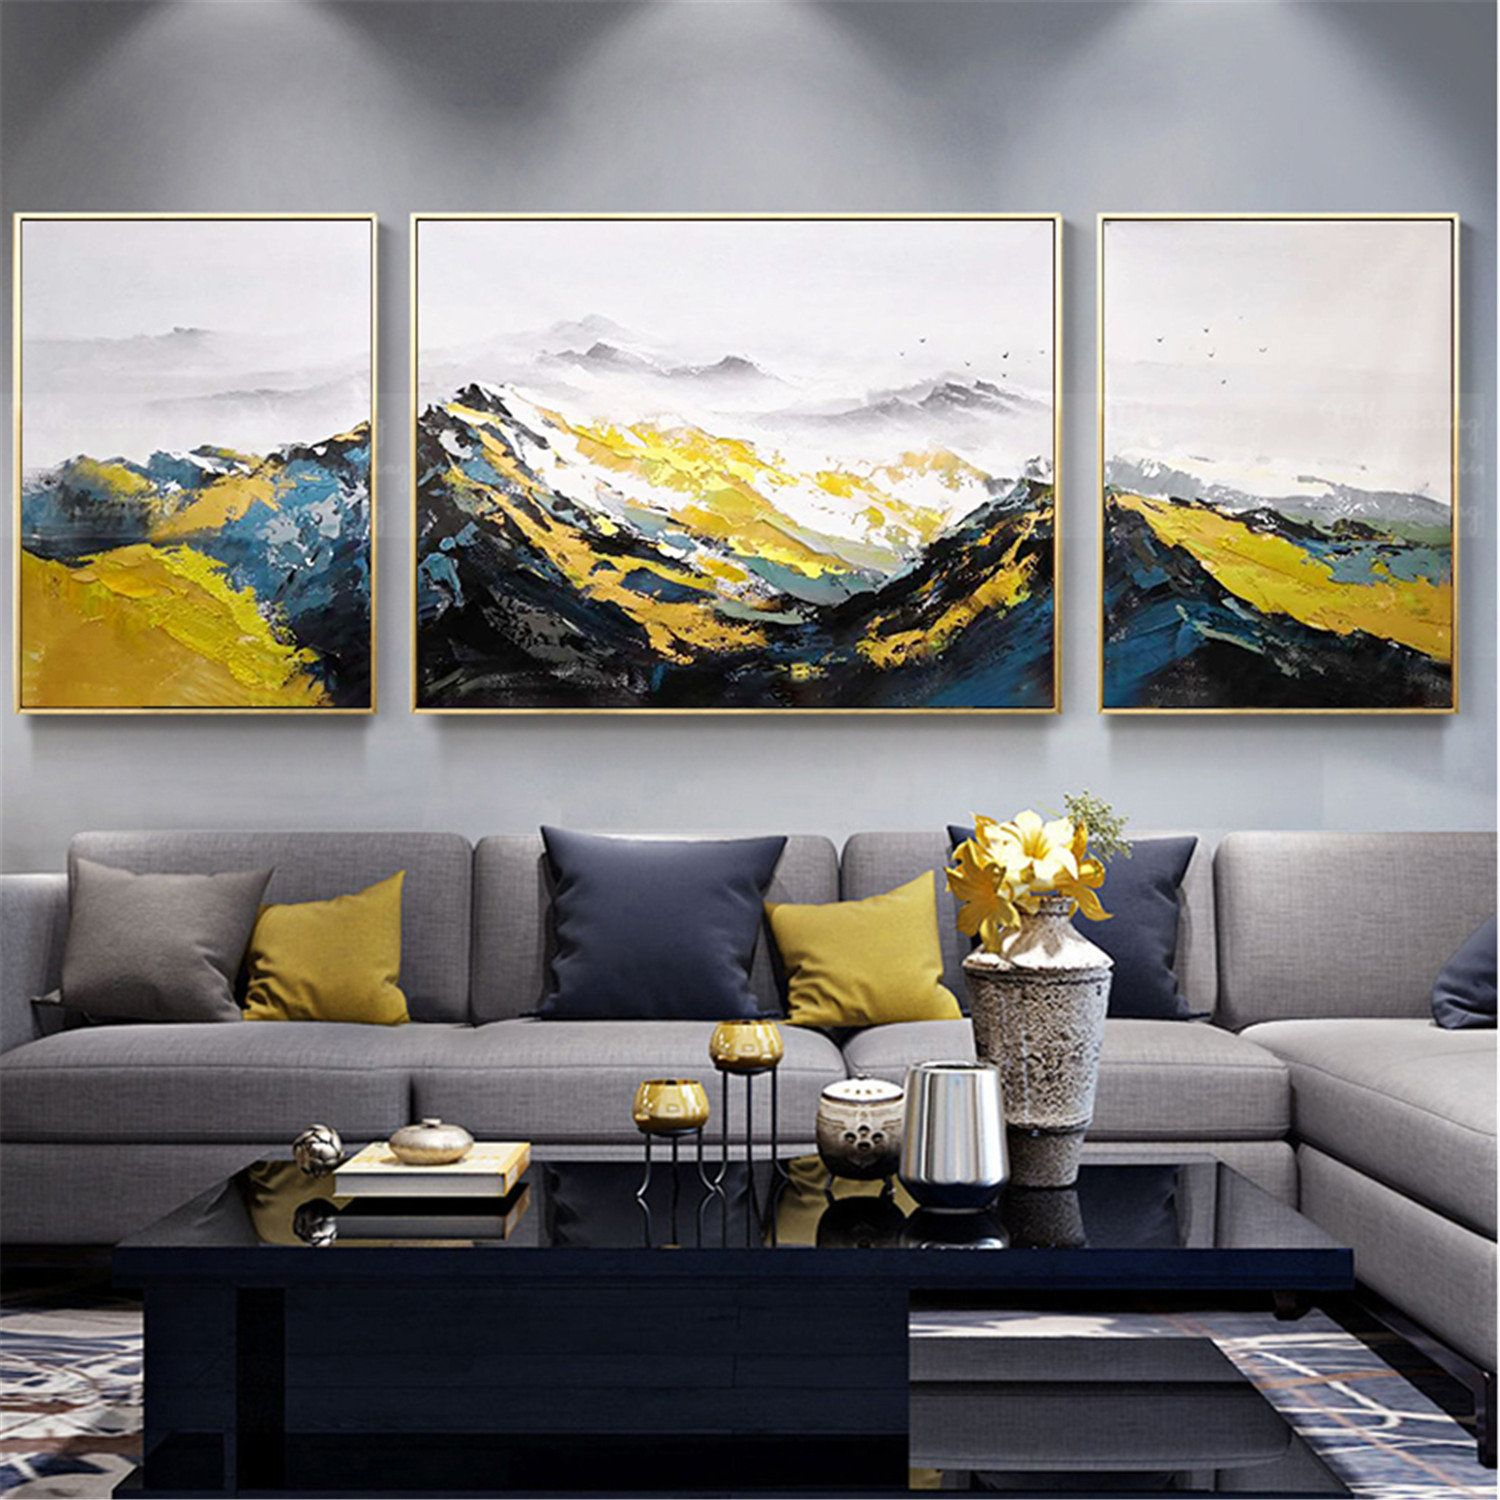 3 Pieces Abstract Painting Original Acrylic Canvas Wall Art Etsy Living Room Canvas Living Room Art Canvas Art Wall Decor